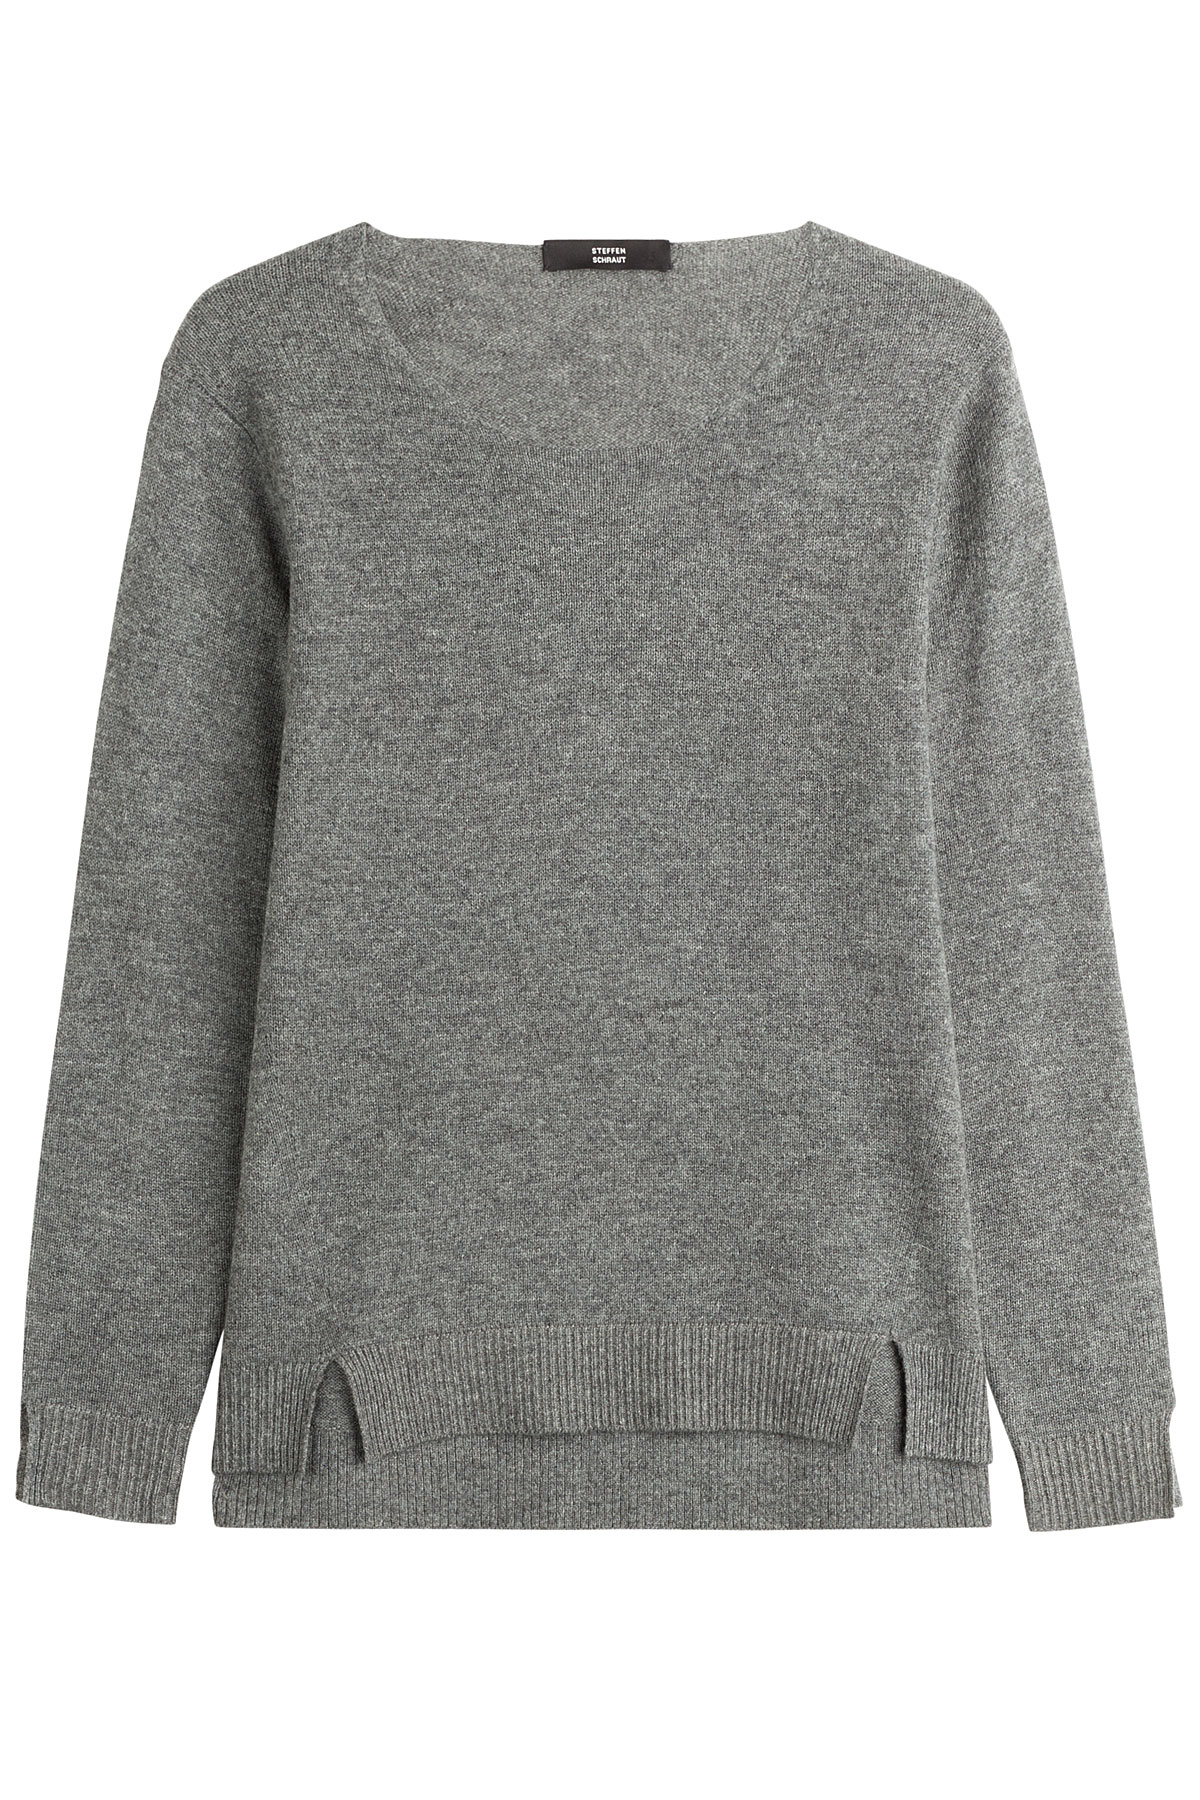 steffen schraut essential cashmere pullover grey in gray lyst. Black Bedroom Furniture Sets. Home Design Ideas